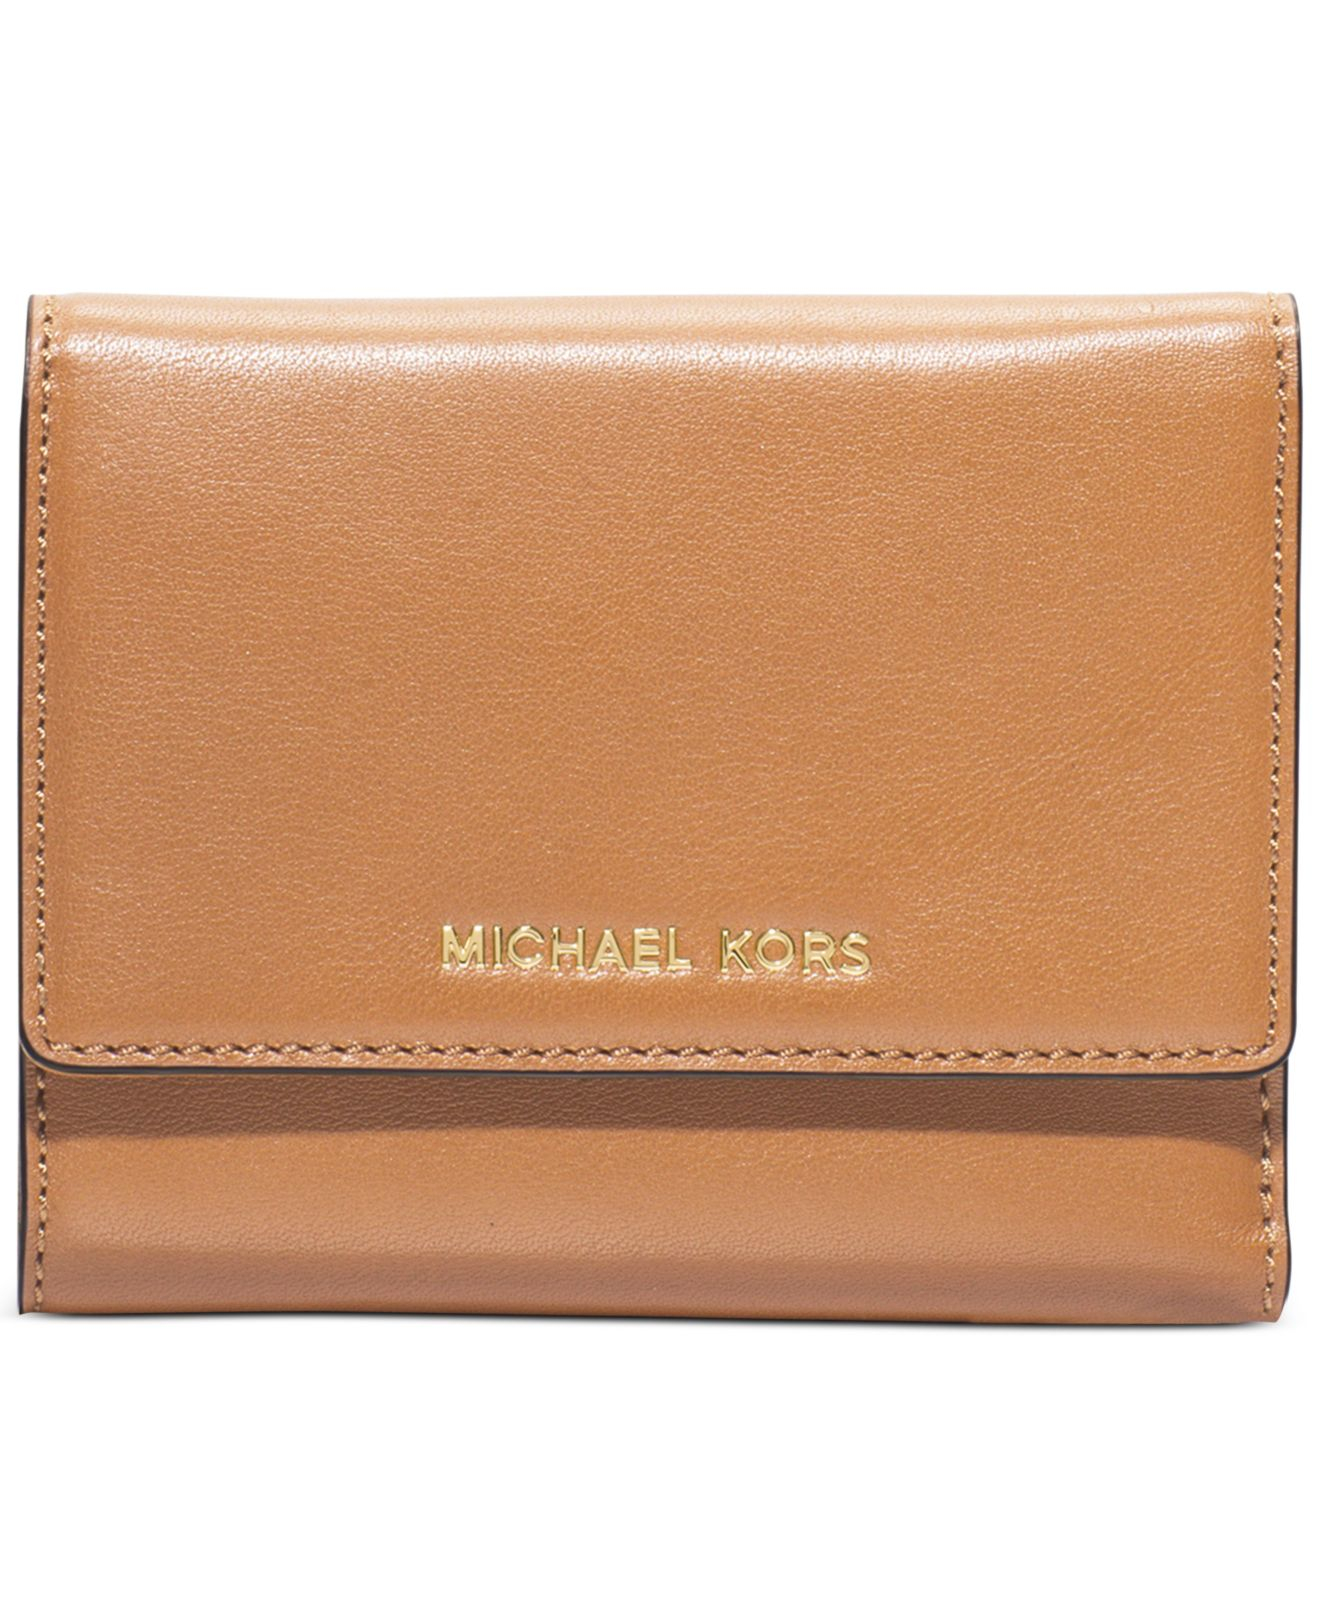 bc36f538a83e Lyst - Michael Kors Michael Colby Medium Trifold Wallet in Metallic